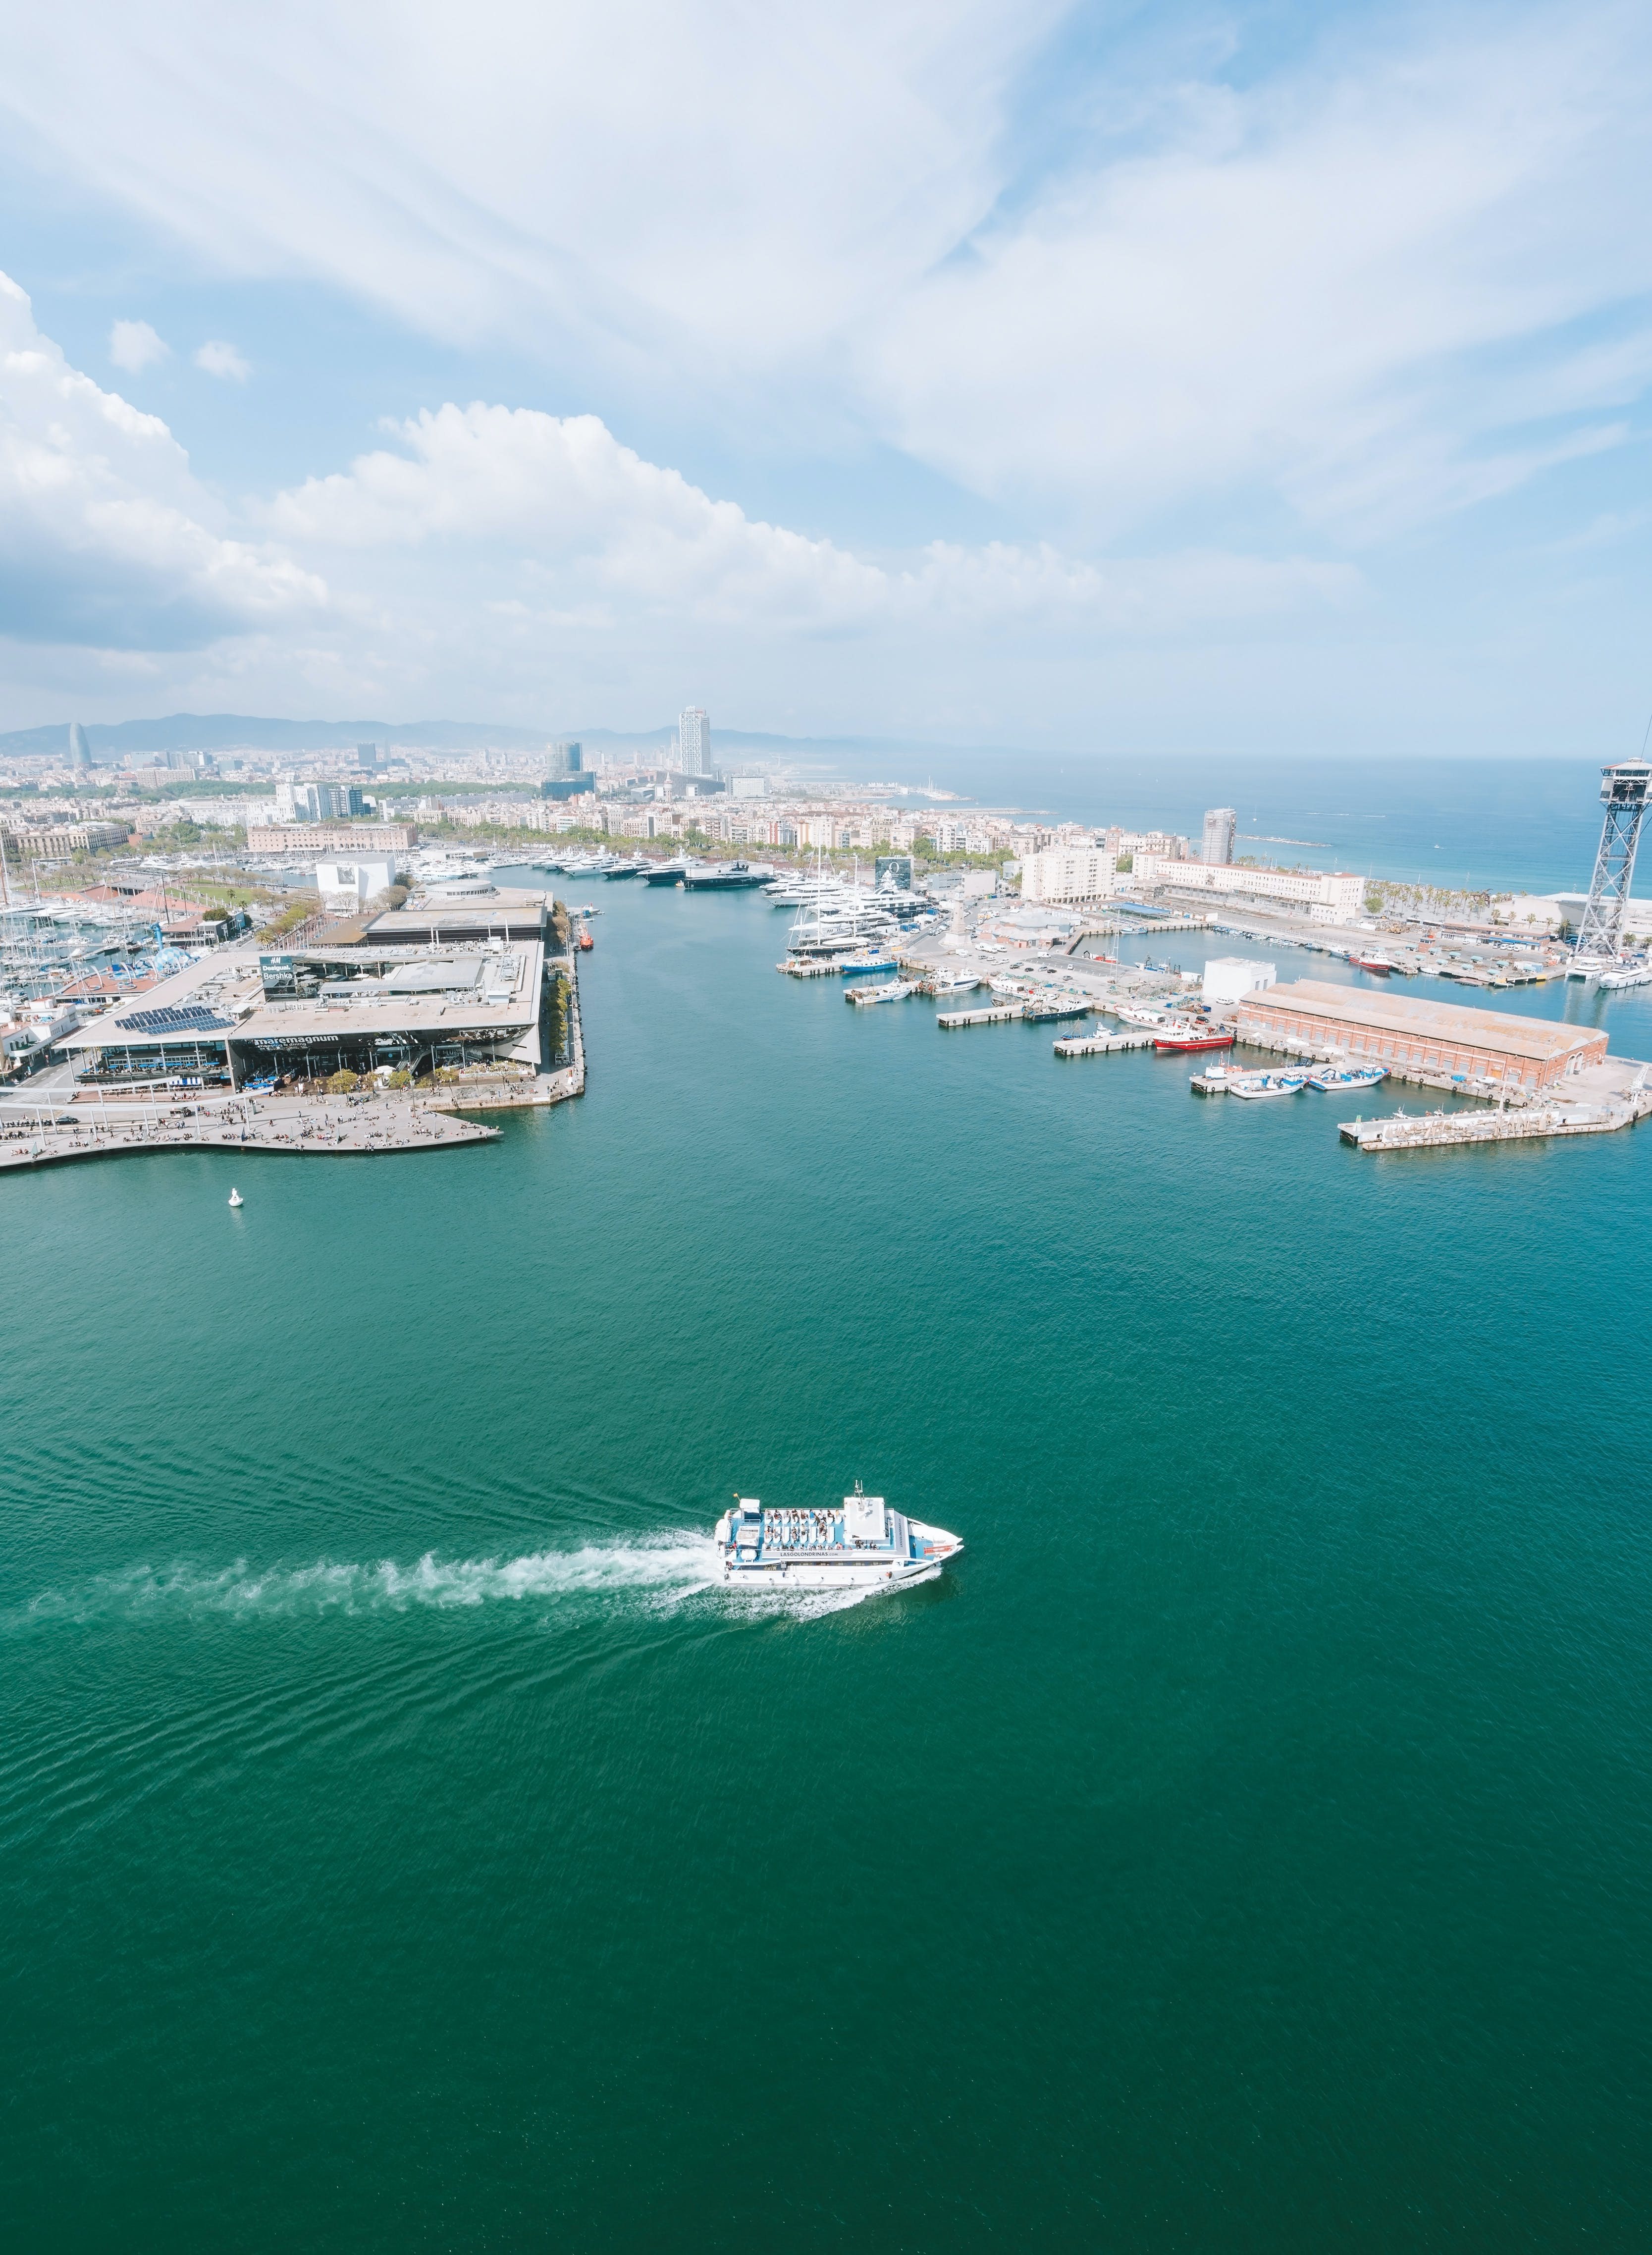 Aerial Photography of Boats and Buildings